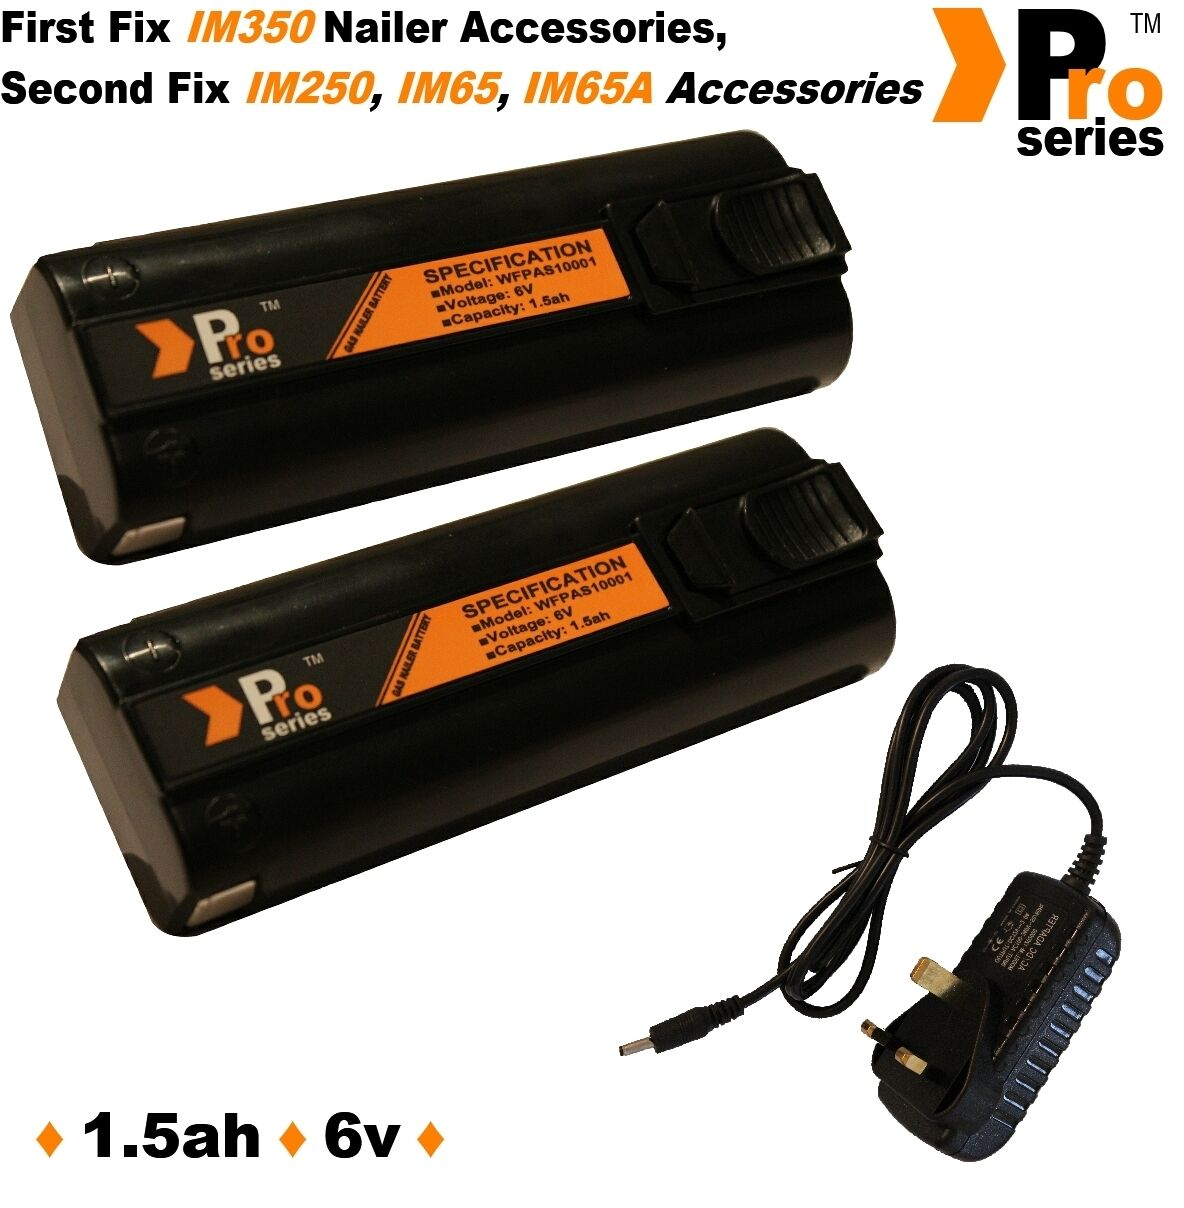 2x replacement batteries 1.5ah & mains charger im350/350+/65/65A/250. Gas Nailer